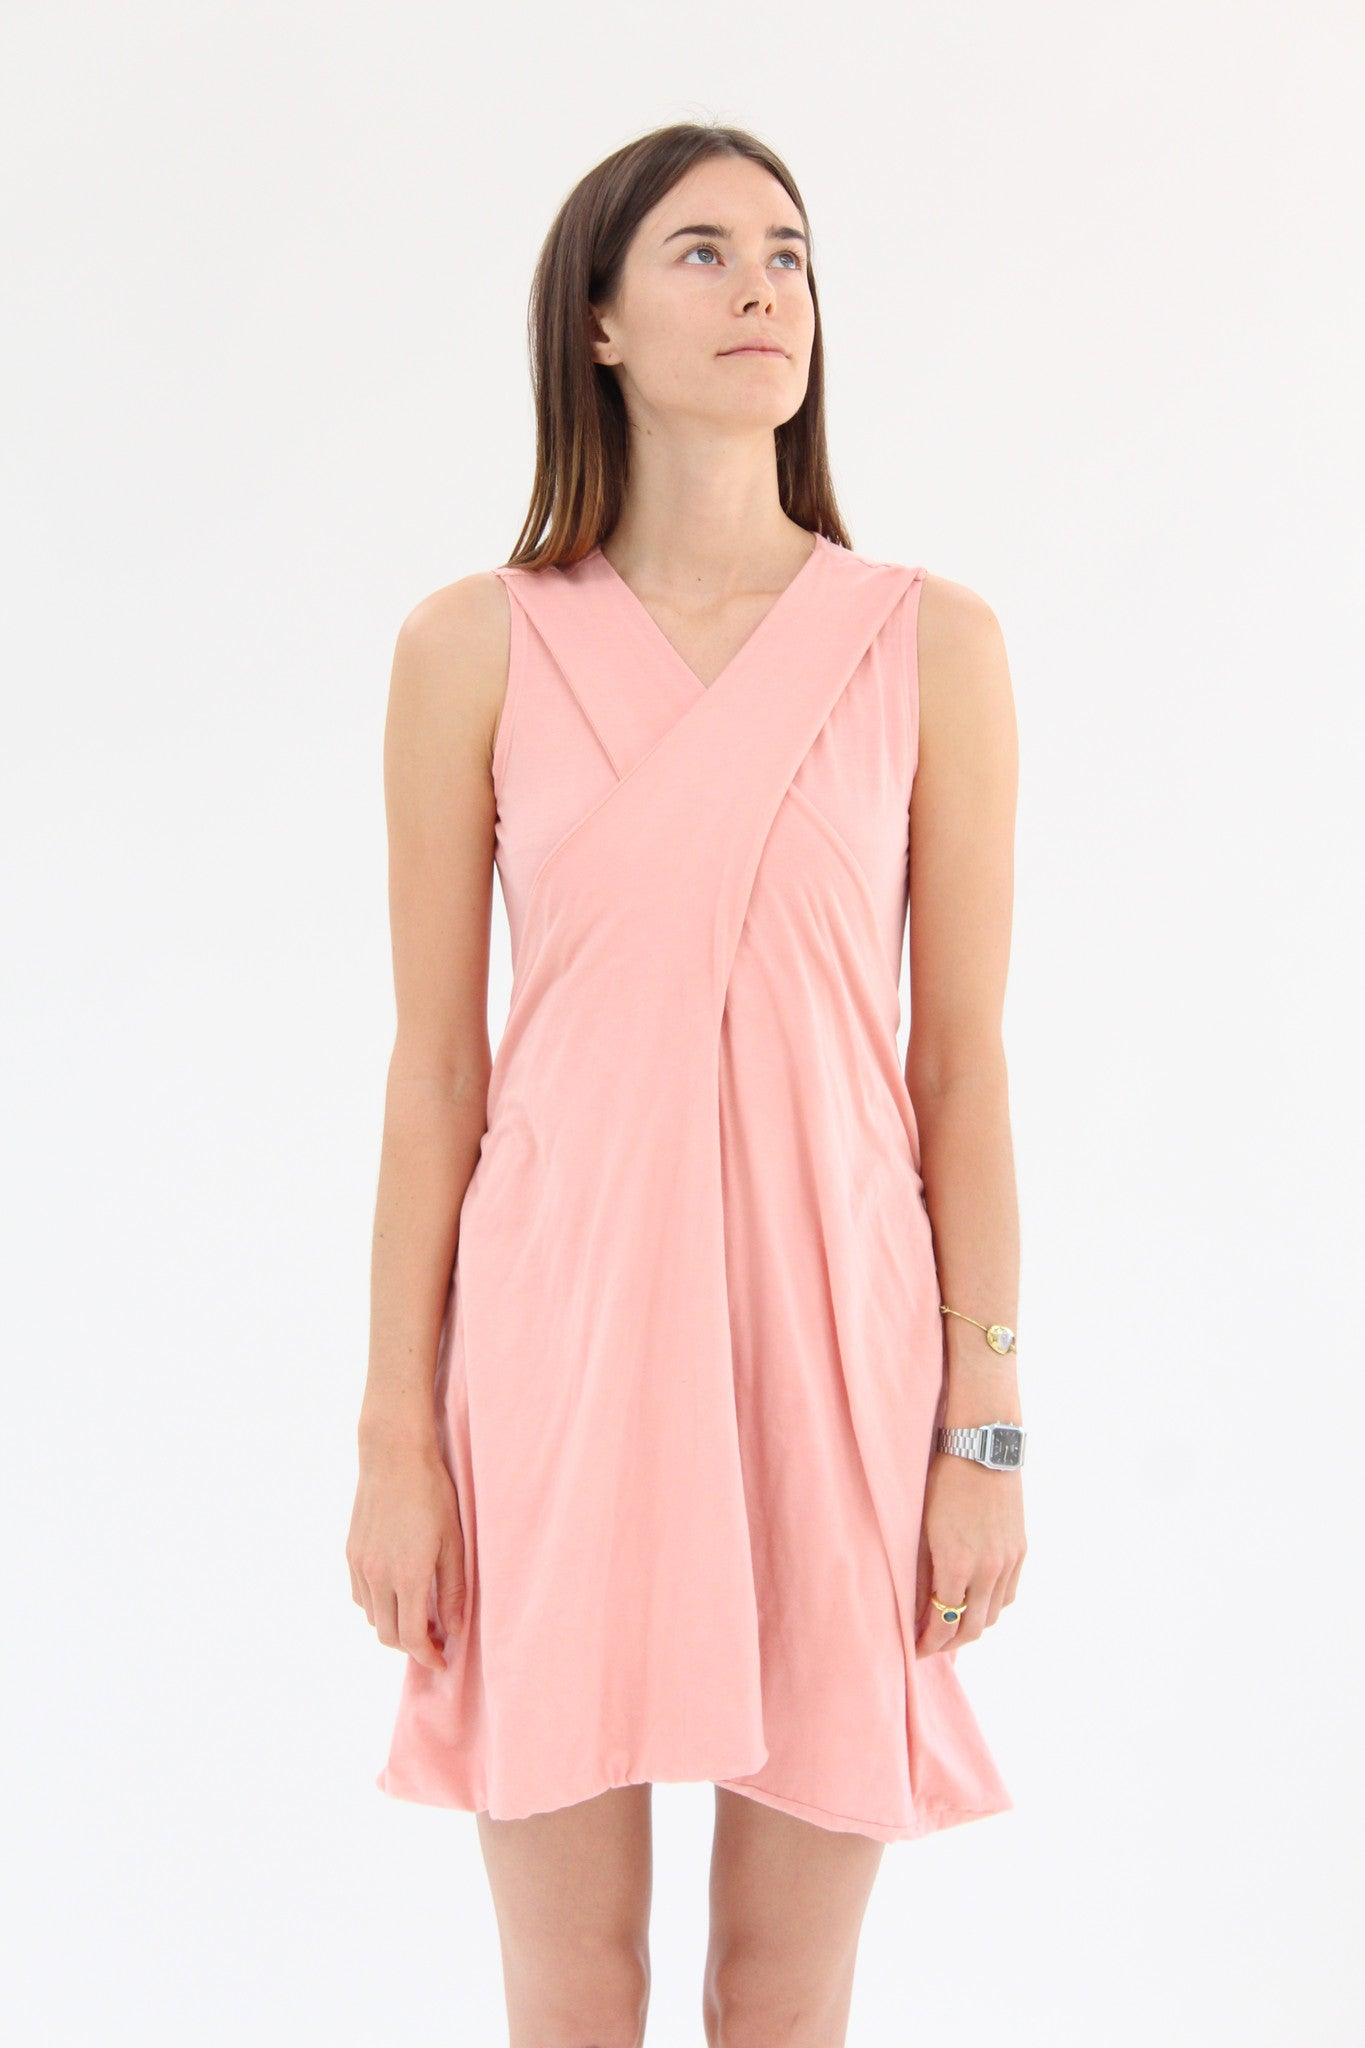 Lina Rennell Criss Cross Jersey Wrap Dress Rose / Beklina